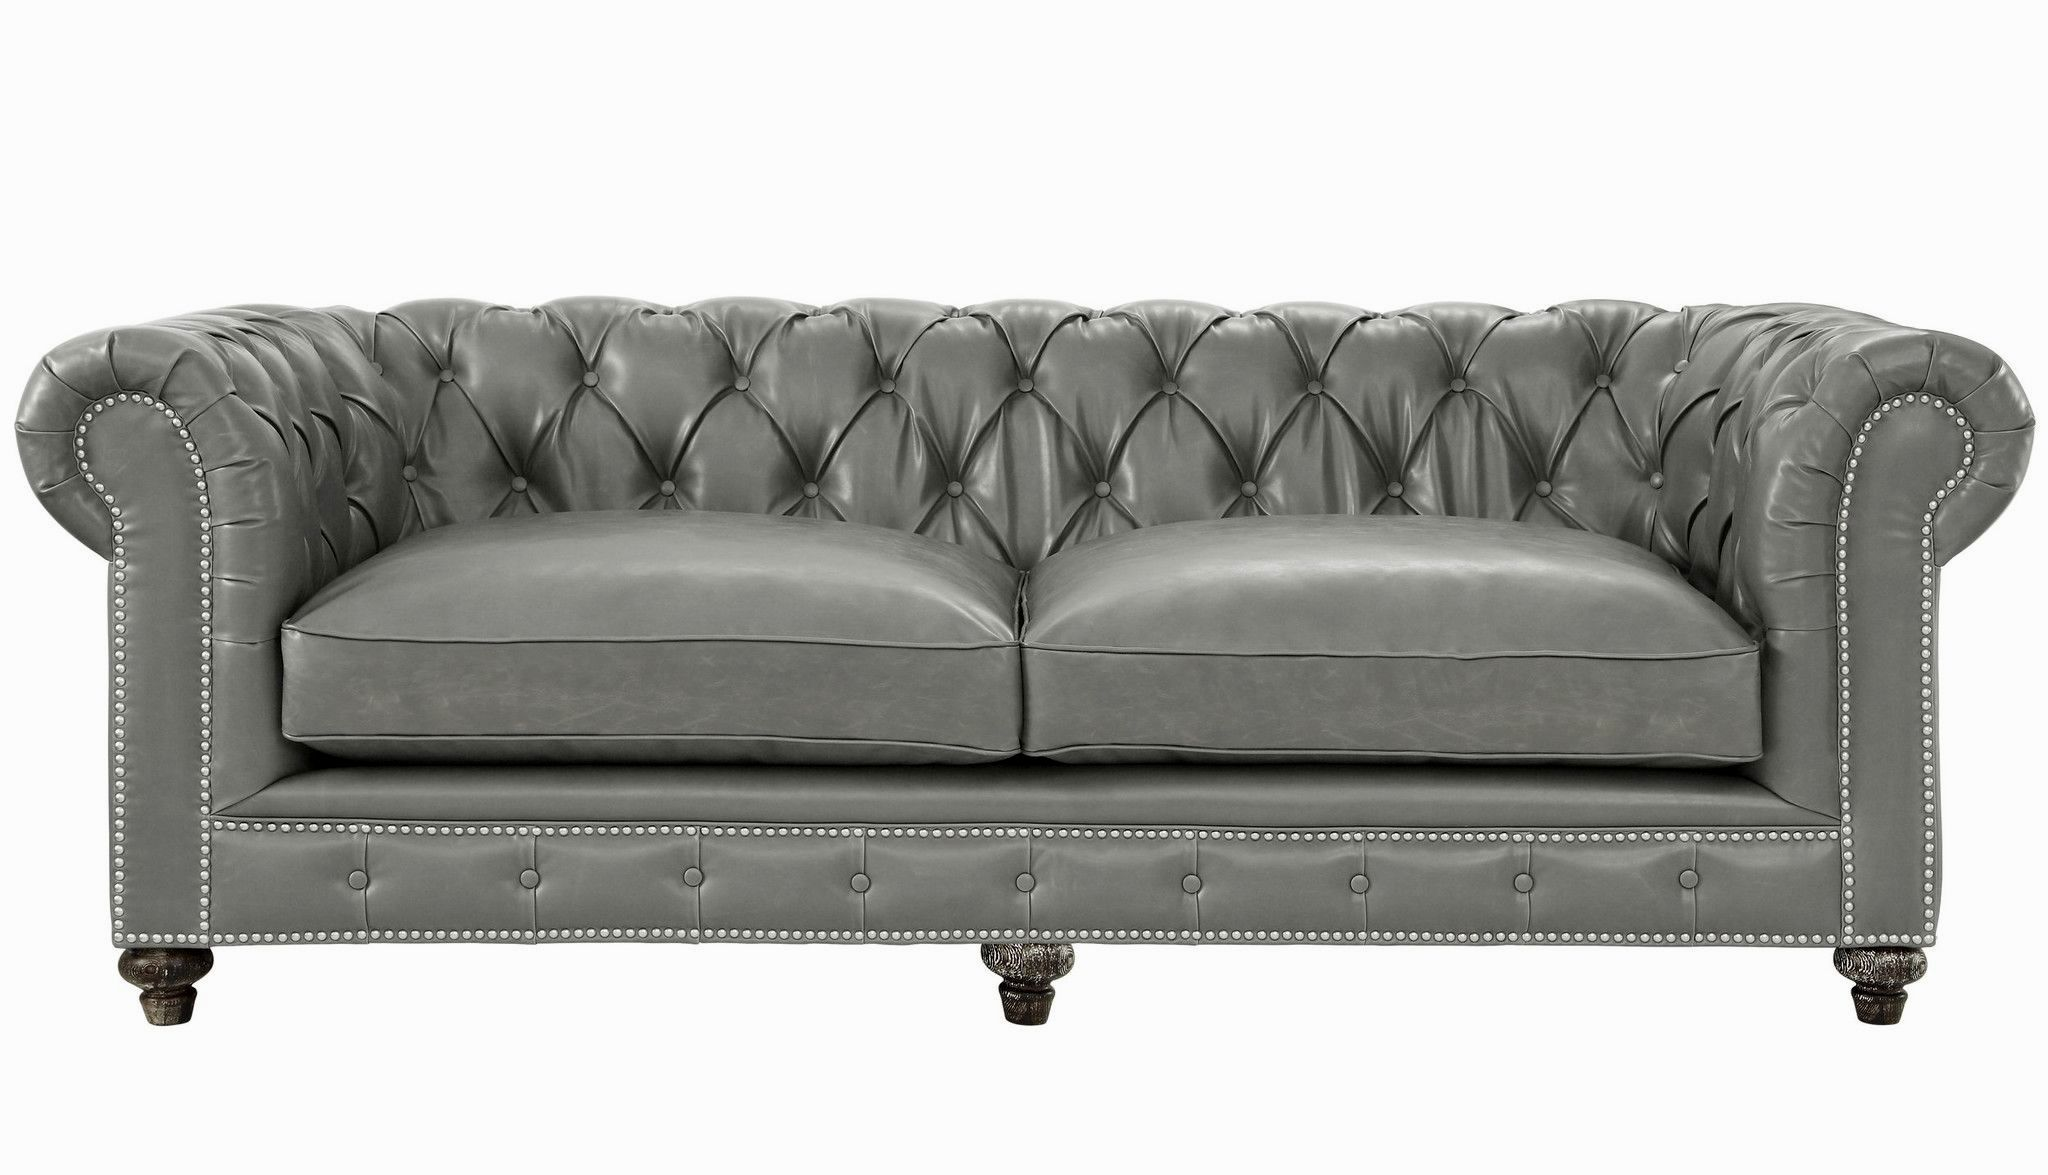 inspirational macy's furniture sofa online-Sensational Macy's Furniture sofa Layout